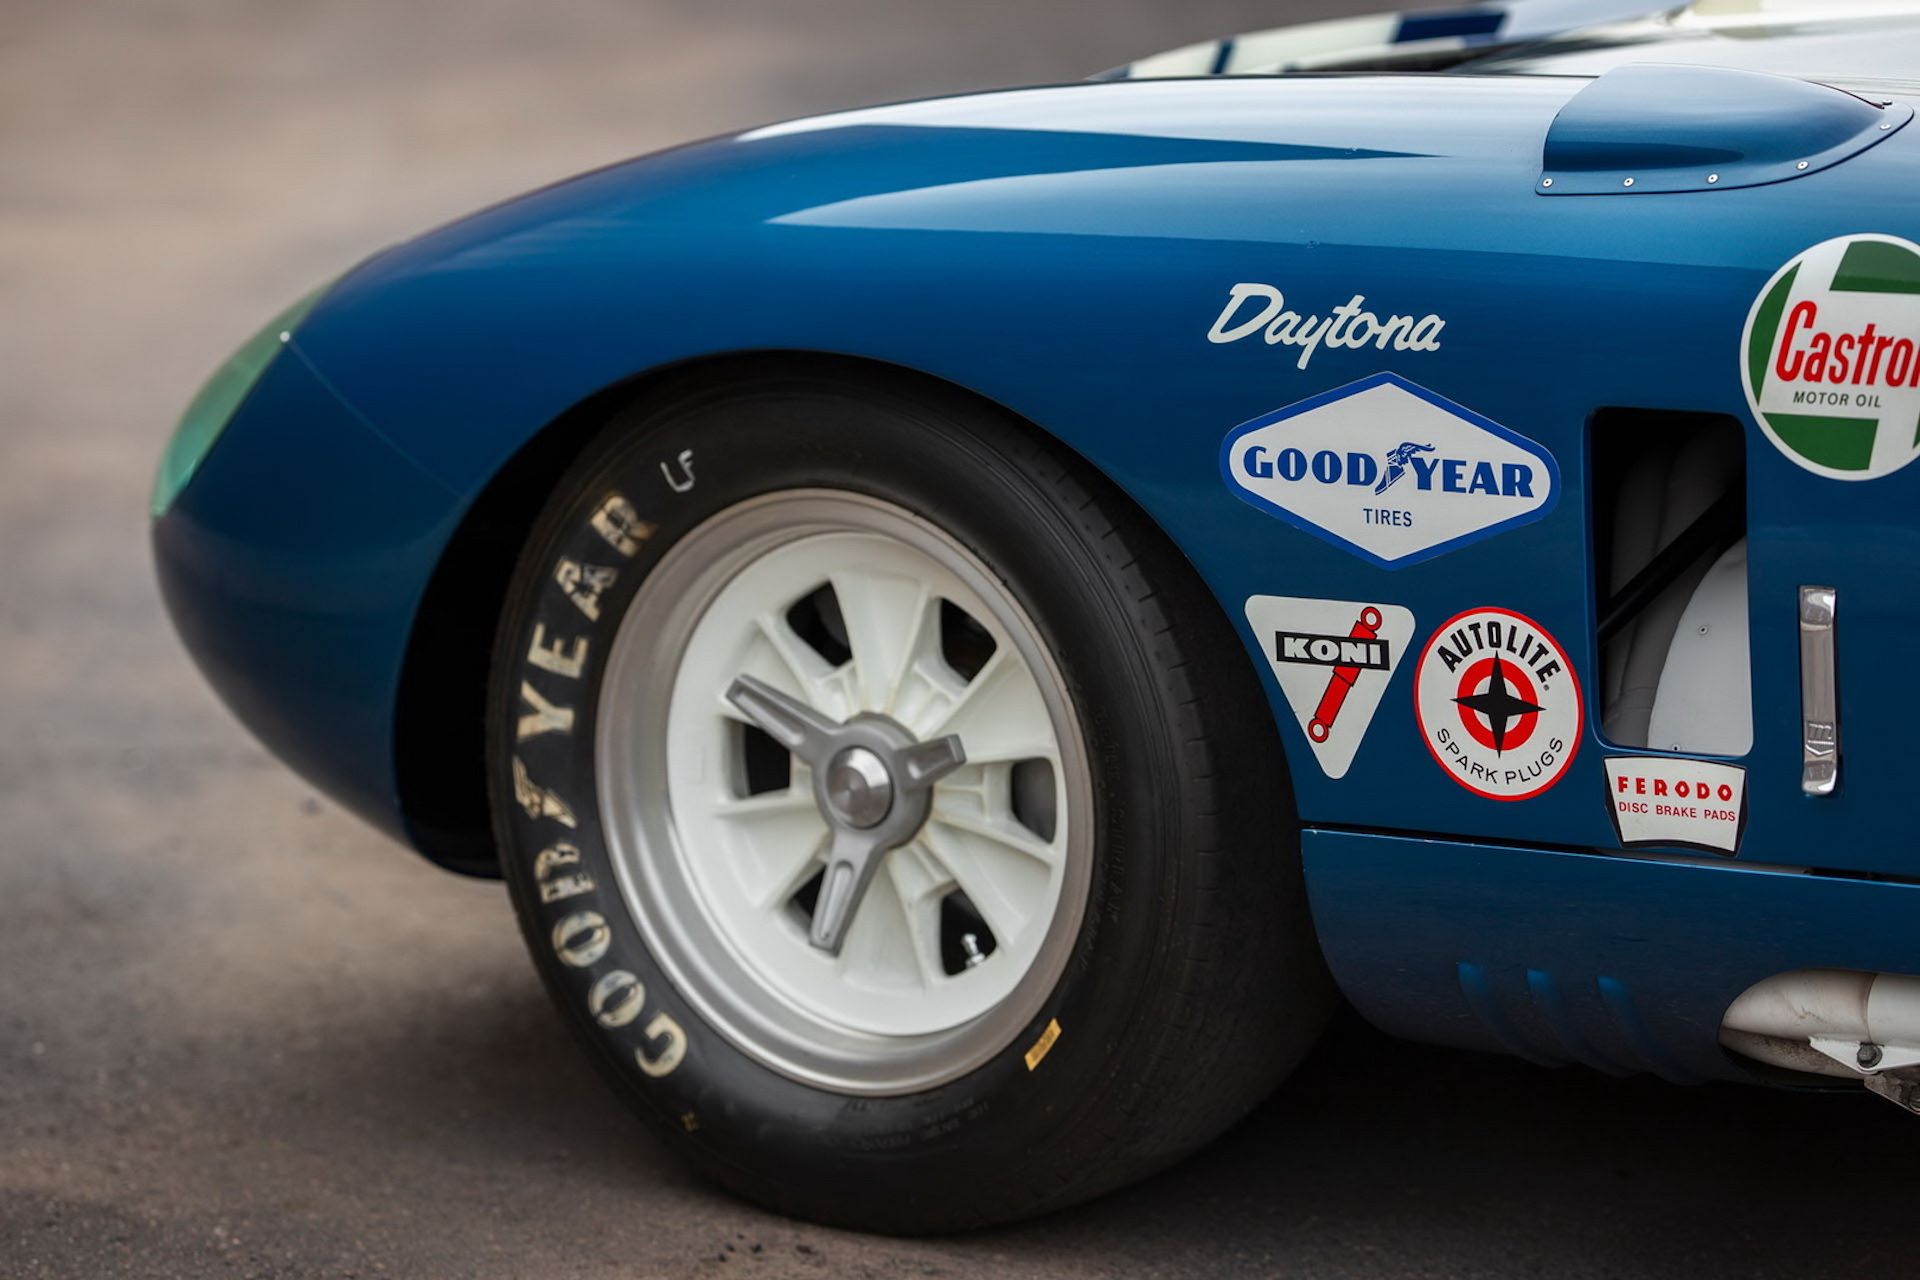 Daytona-Cobra-Carroll-Shelby-auction-AC-Cobra-9